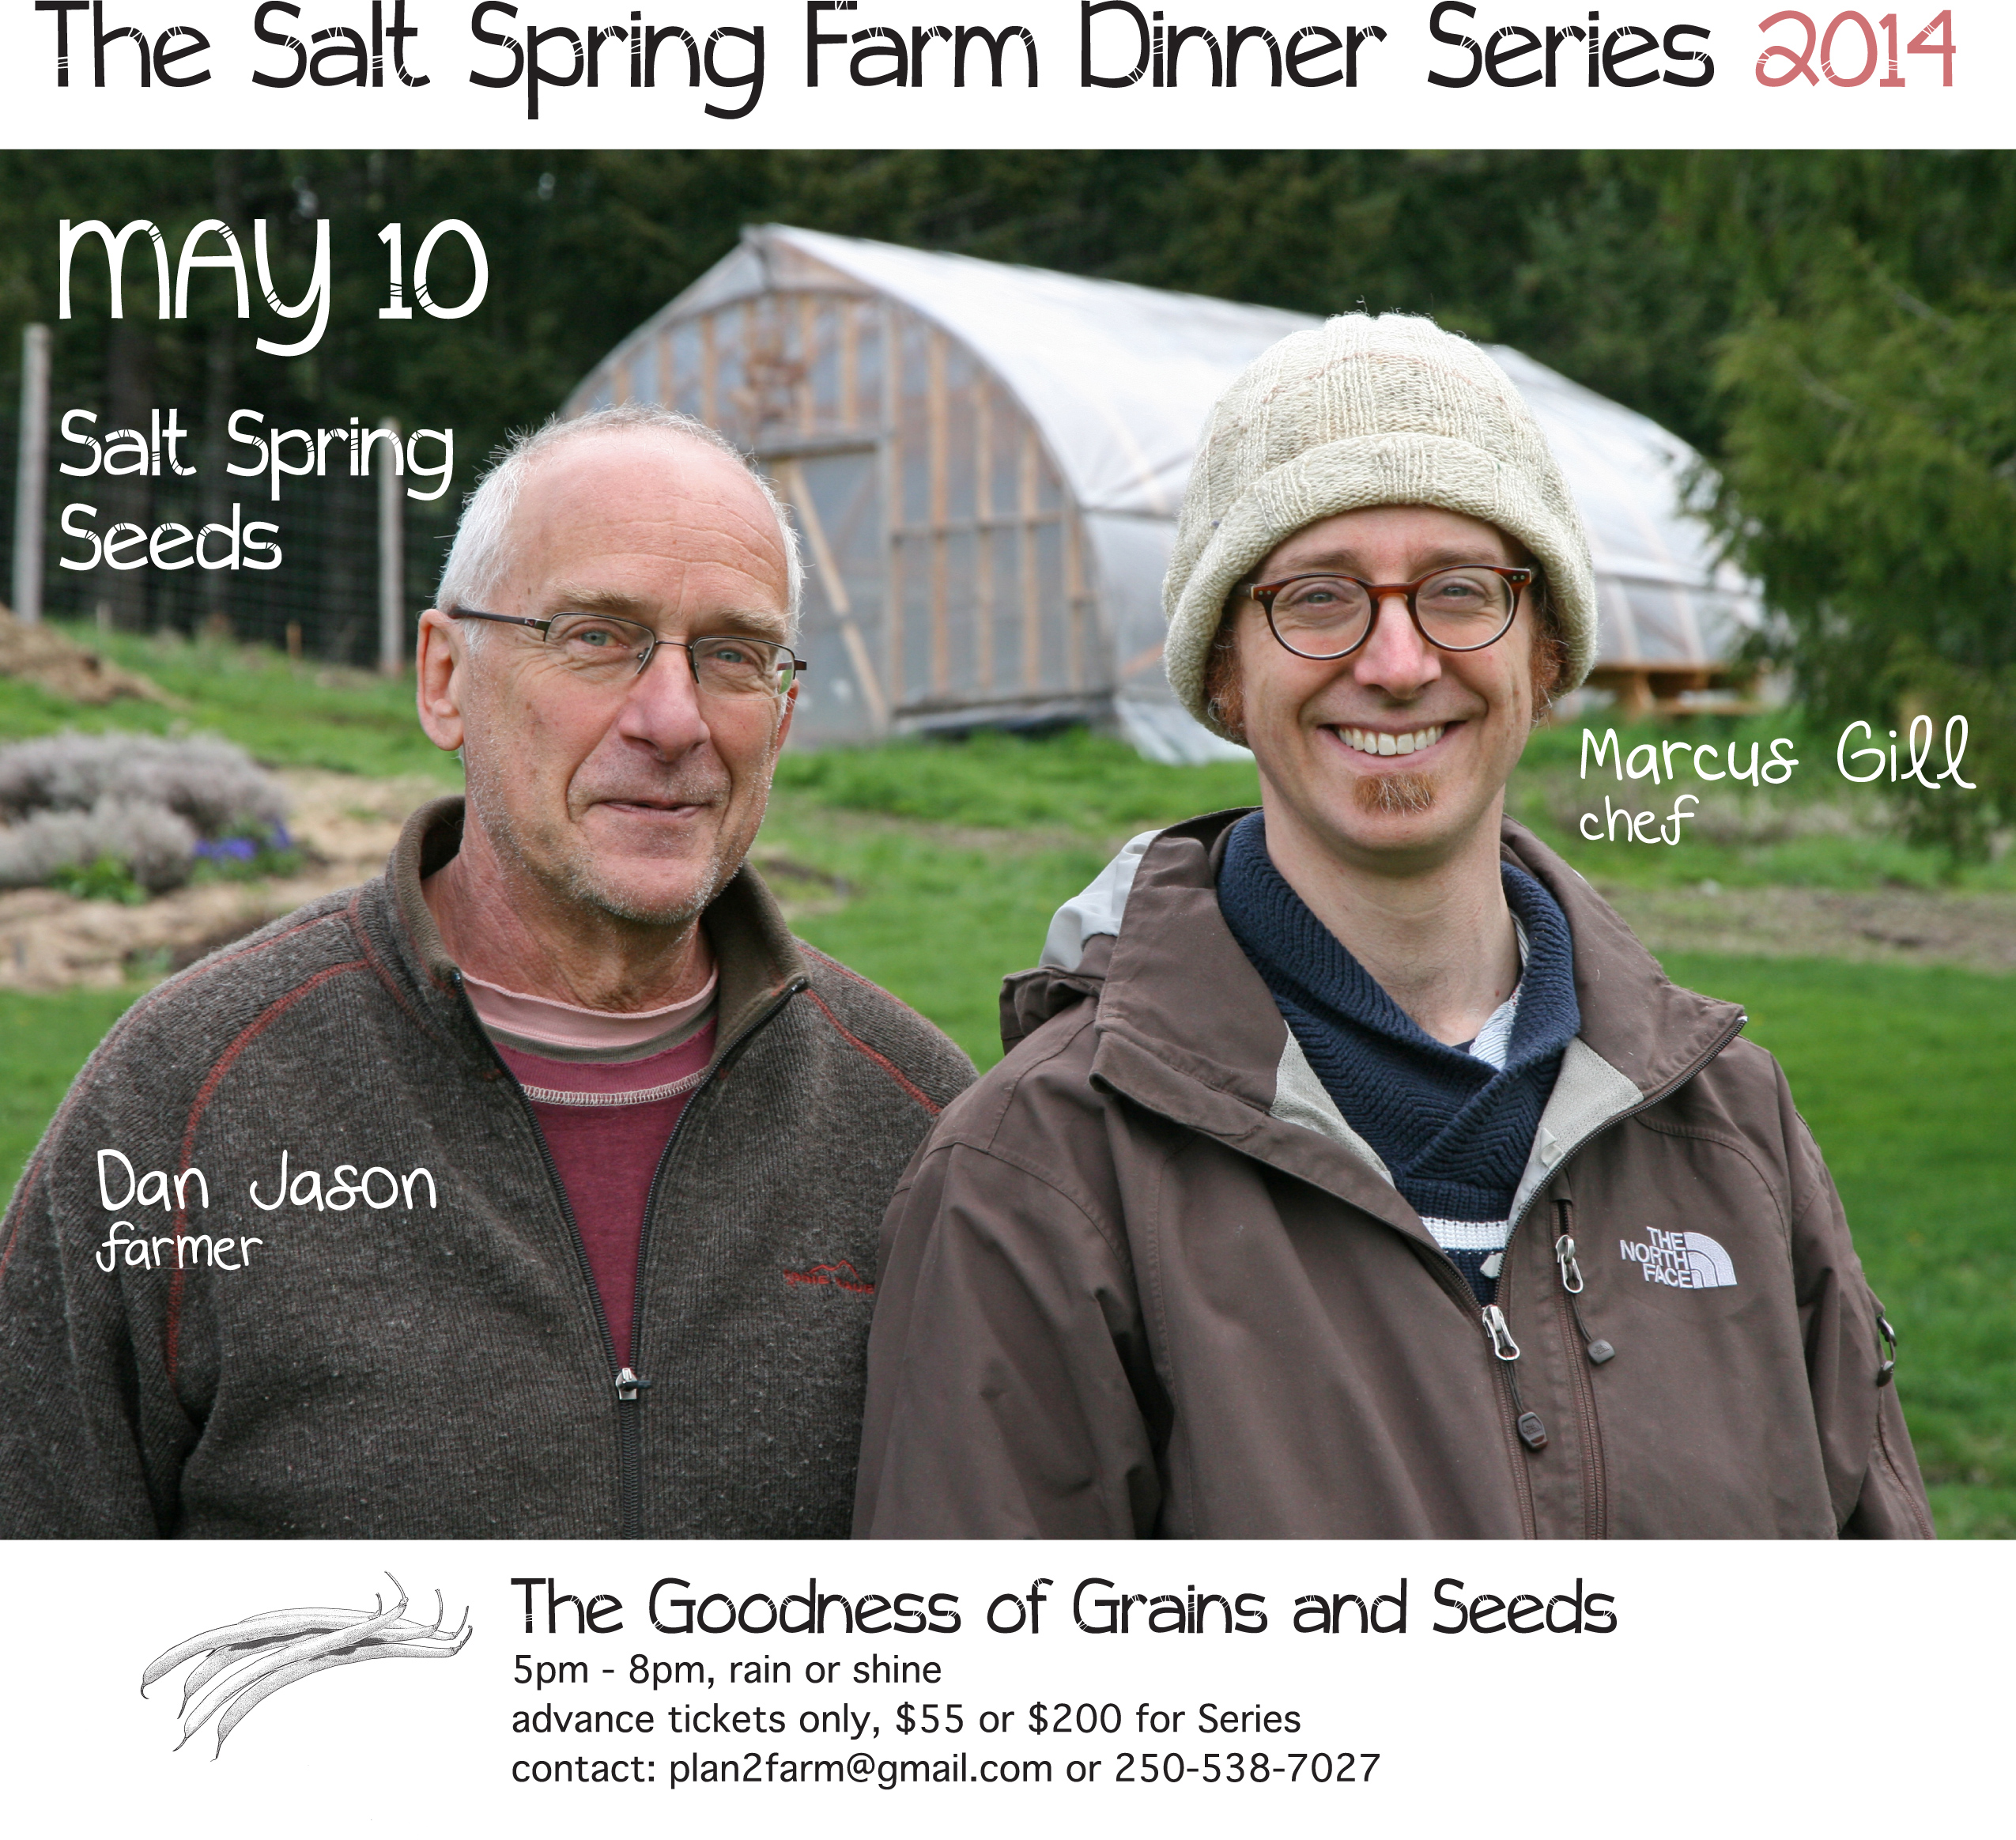 Salt Spring Farm Dinner Series: SOLD OUT!